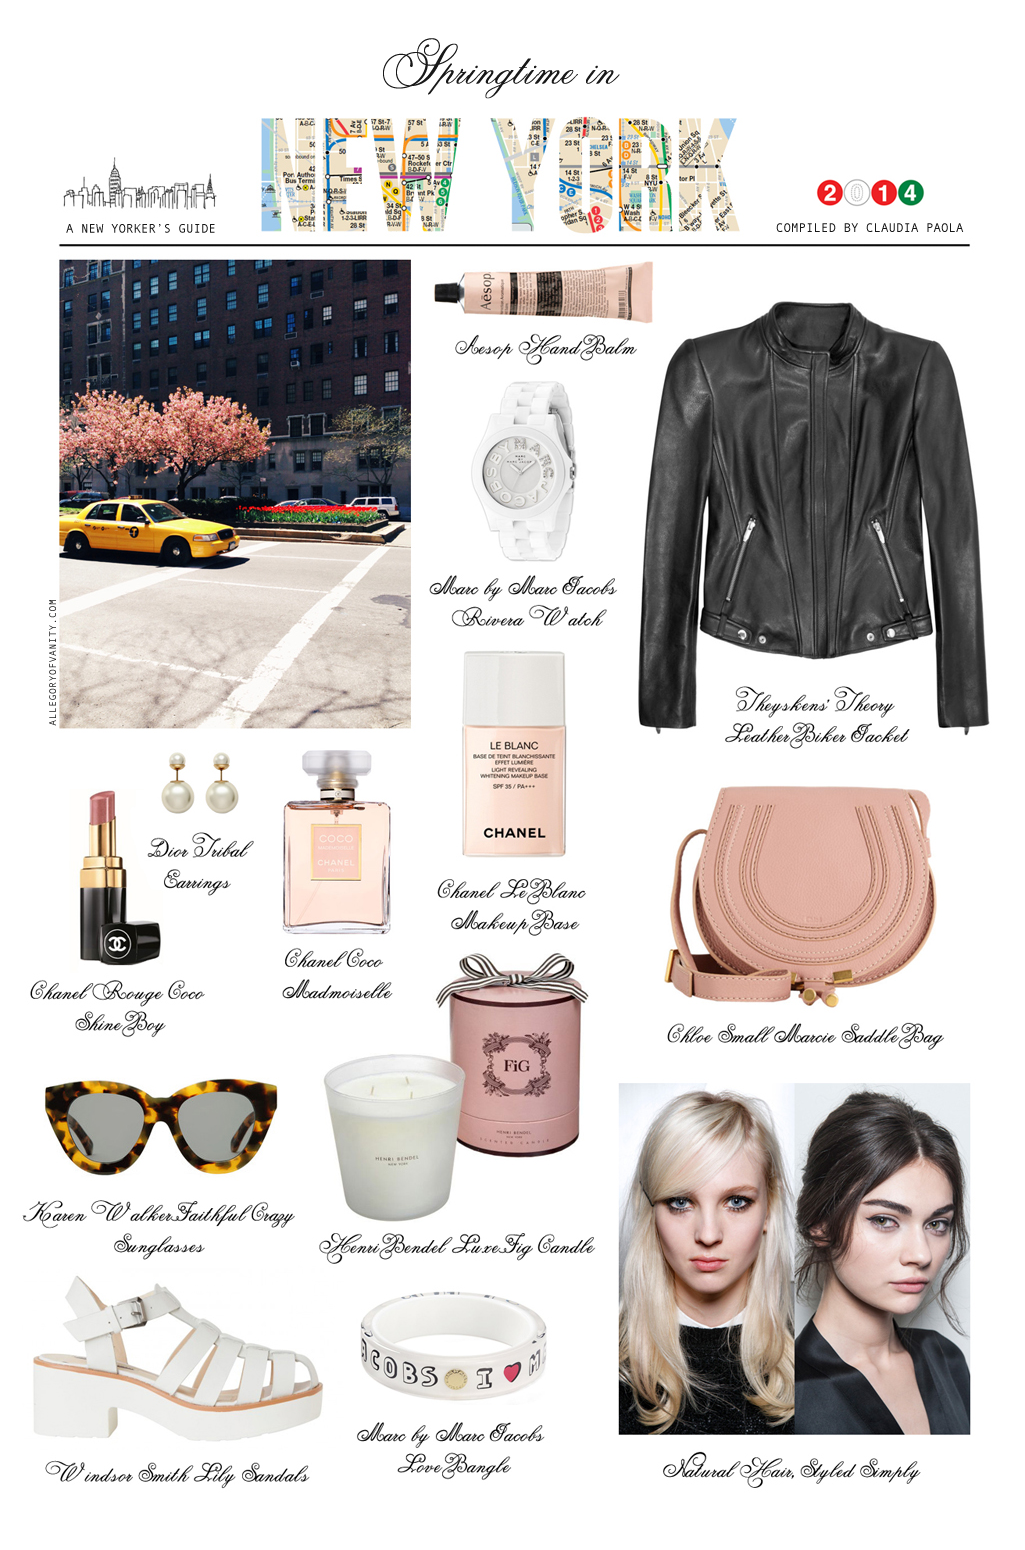 List of Springtime Essentials: NYC Personal Style Guide | Allegory of Vanity